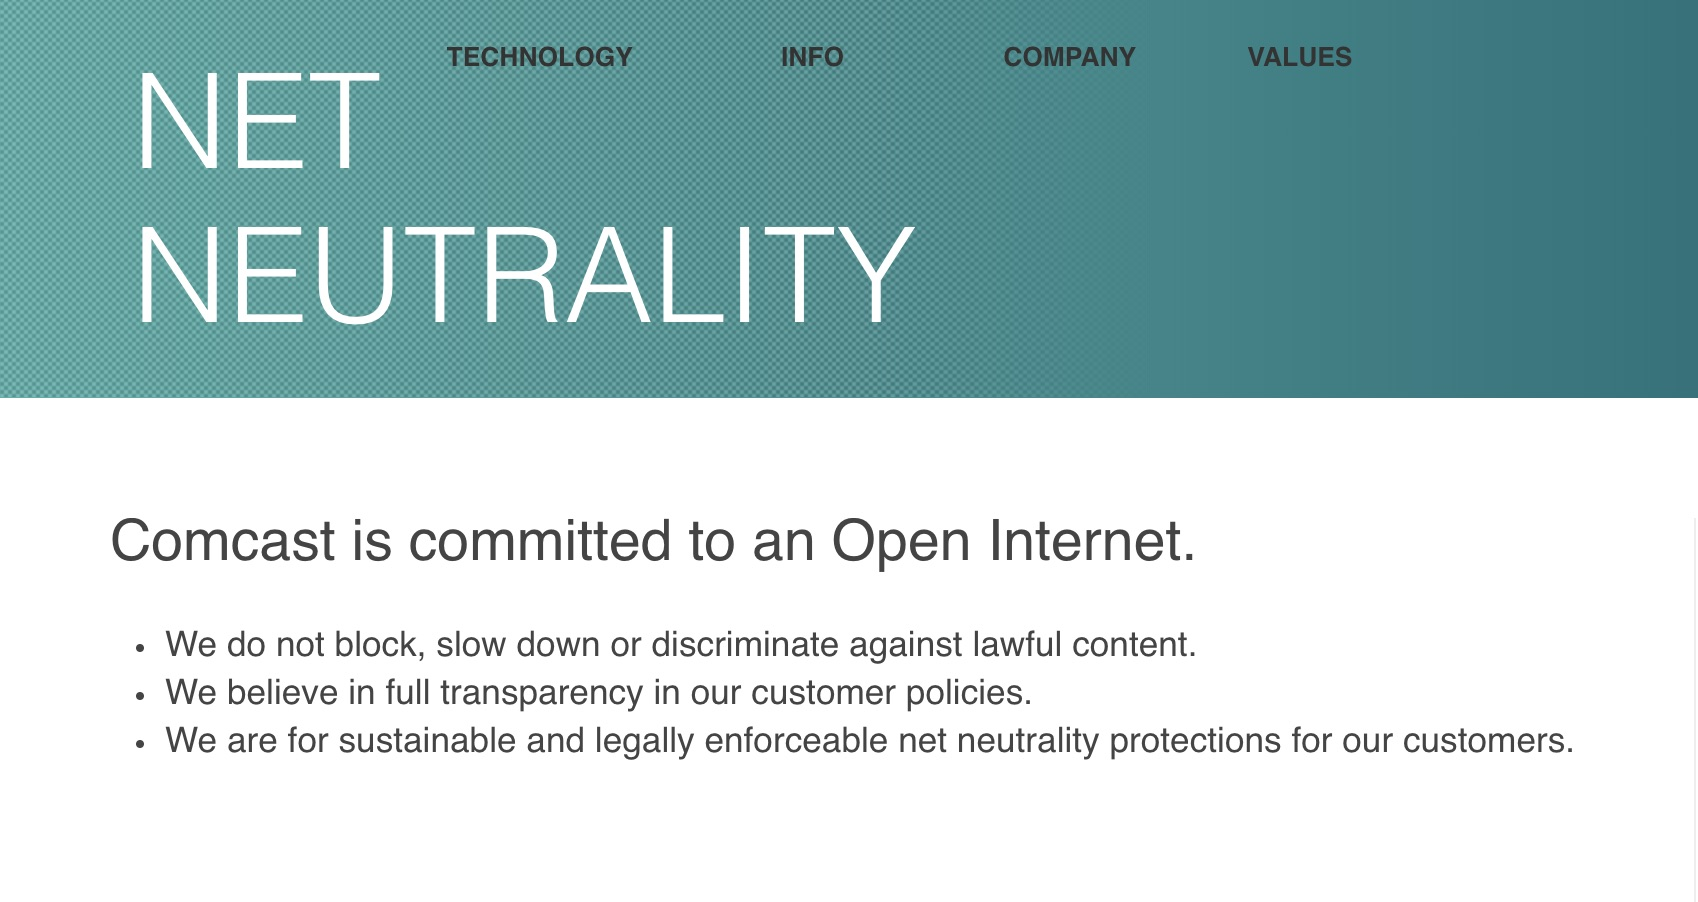 Comcast Quote Inspiration Comcast Deleted Net Neutrality Pledge The Same Day Fcc Announced